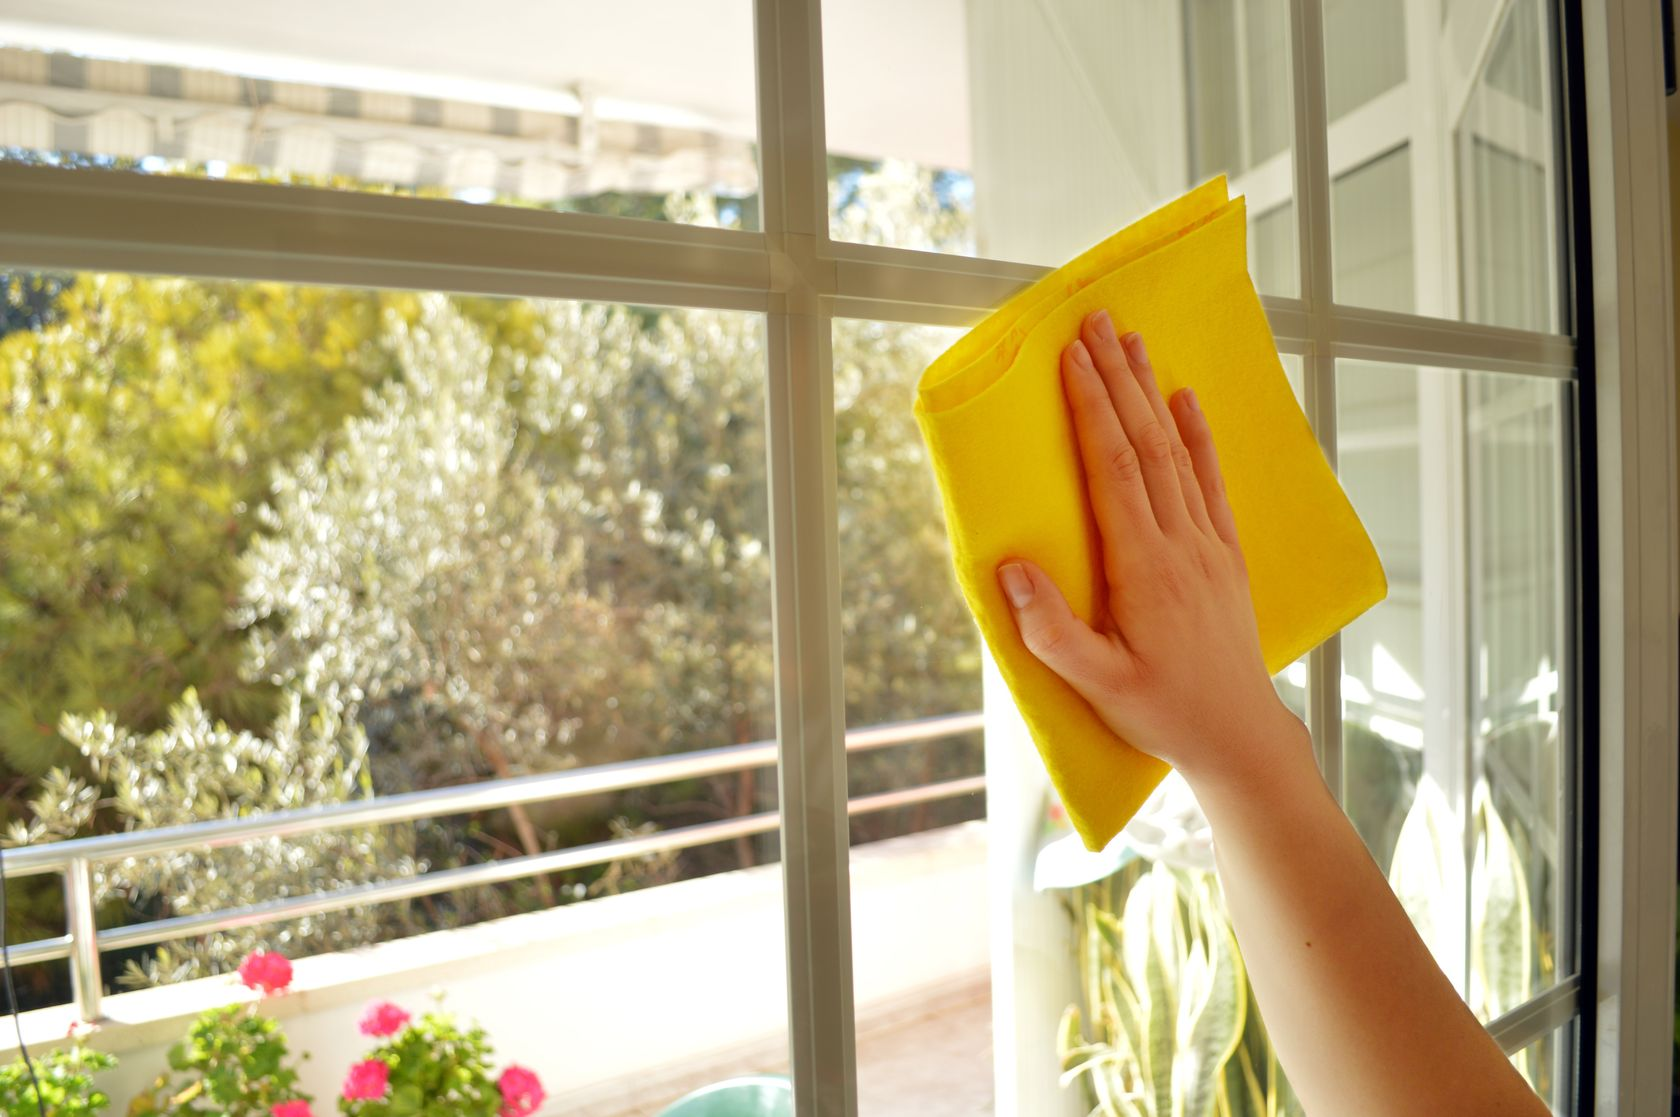 Clean the window panes with a dry cloth